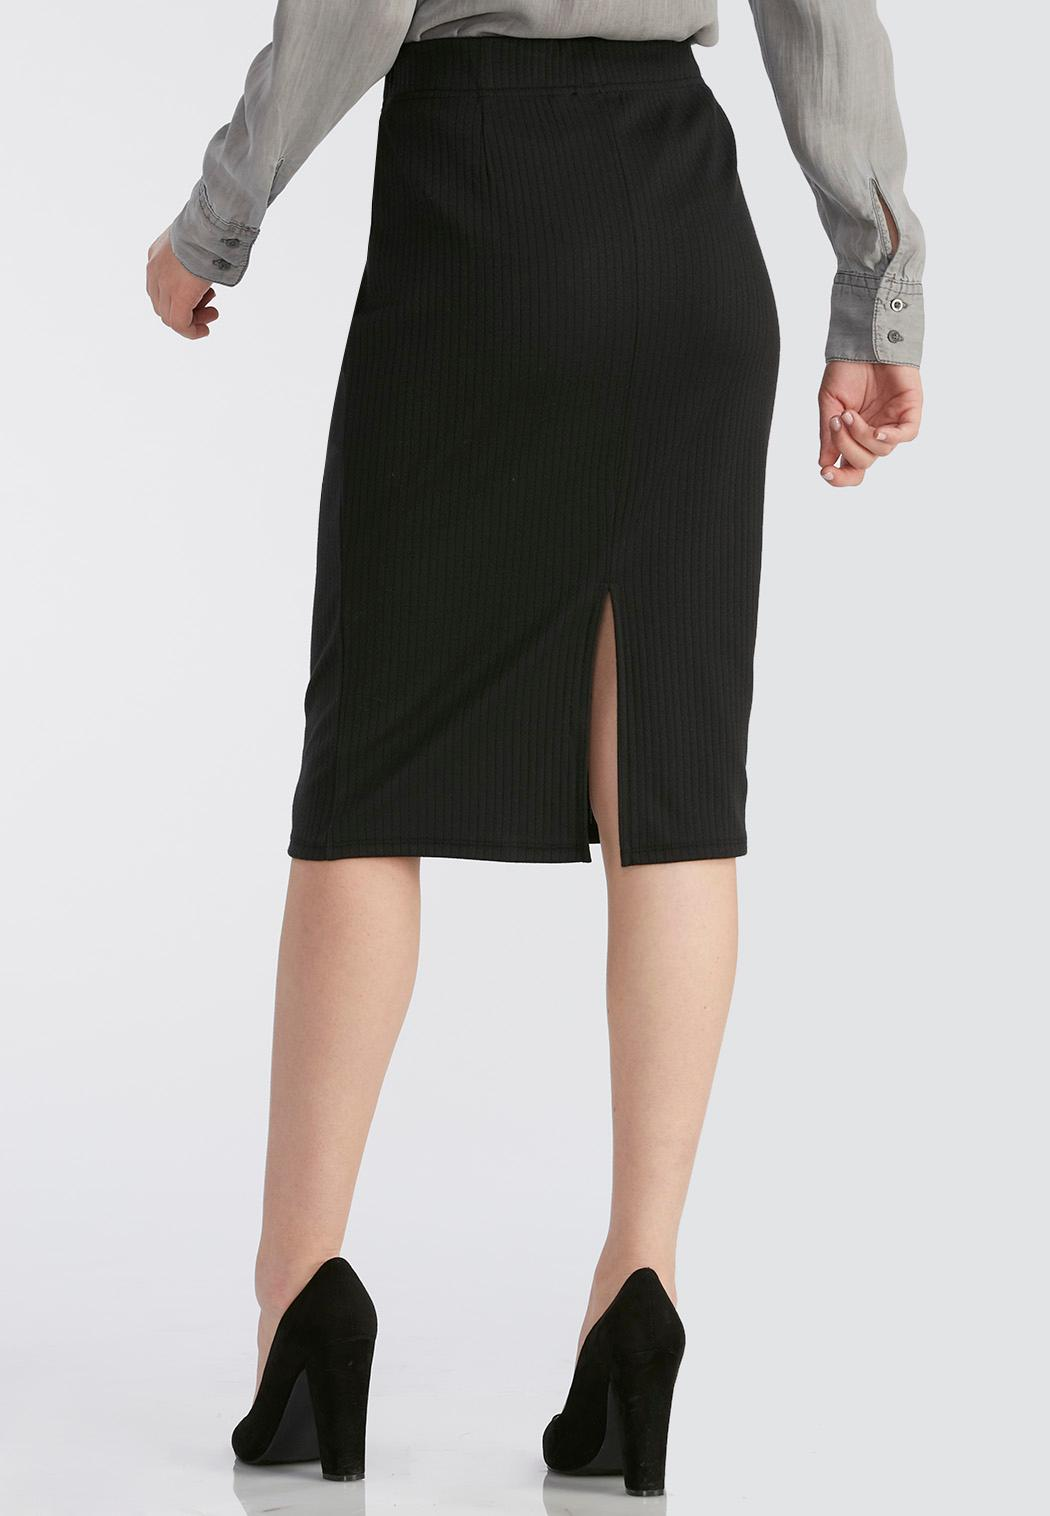 ribbed midi skirt below the knee cato fashions